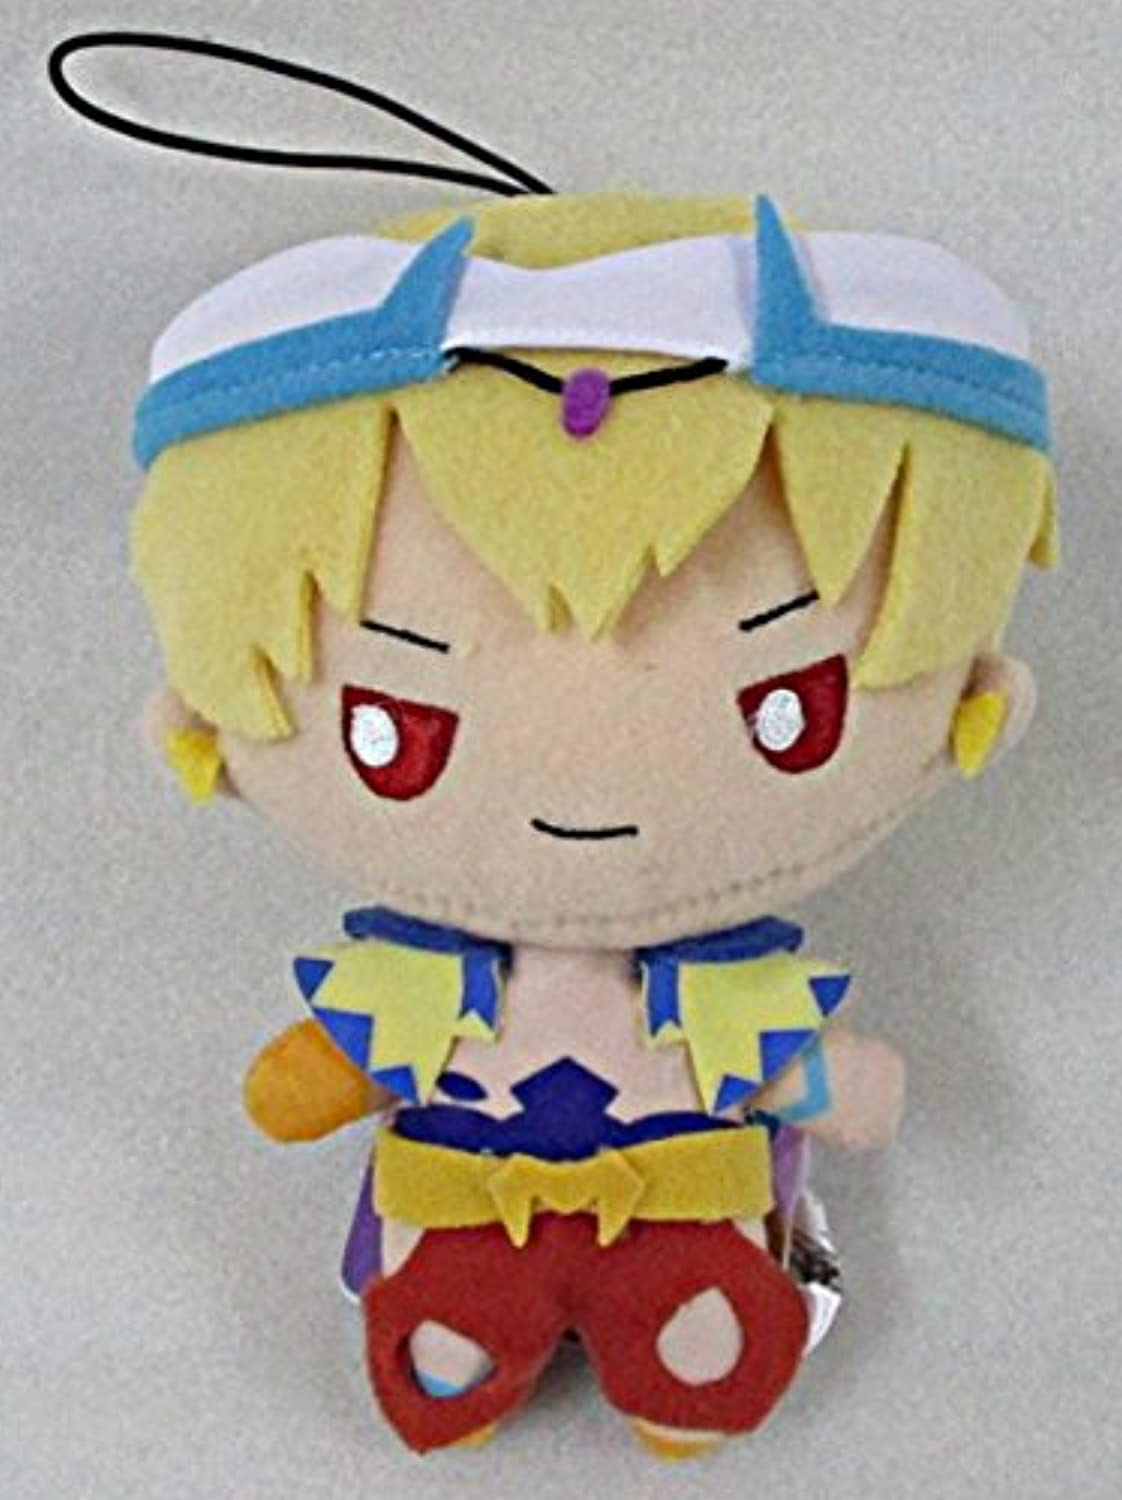 Fate/Grand Order Design produced by Sanrio ぬいぐるみ5 ギルガメッシュ 単品